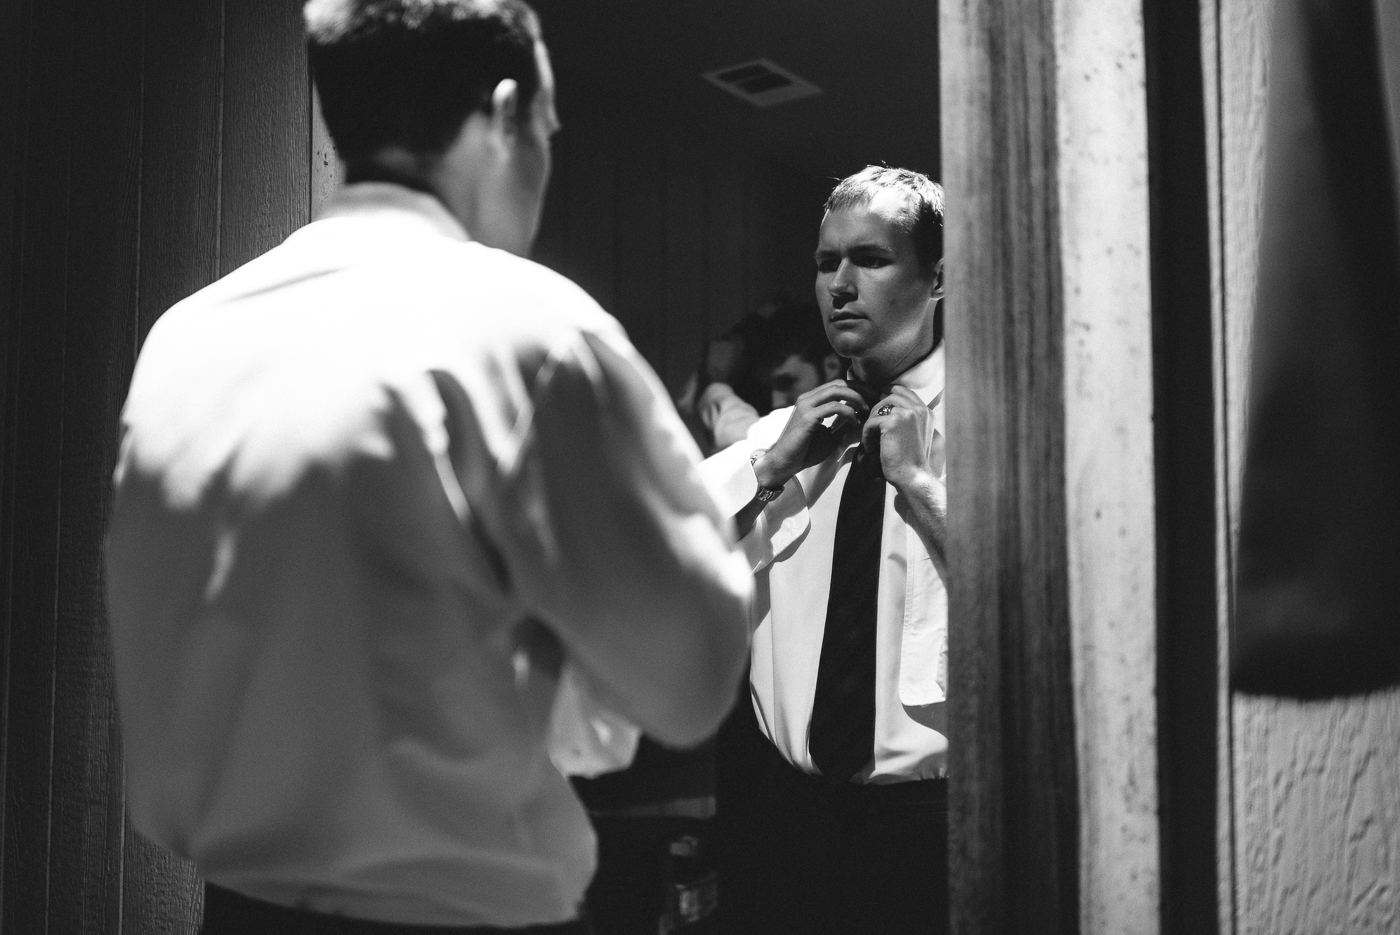 Getting ready shot groomsman tie back and white suit